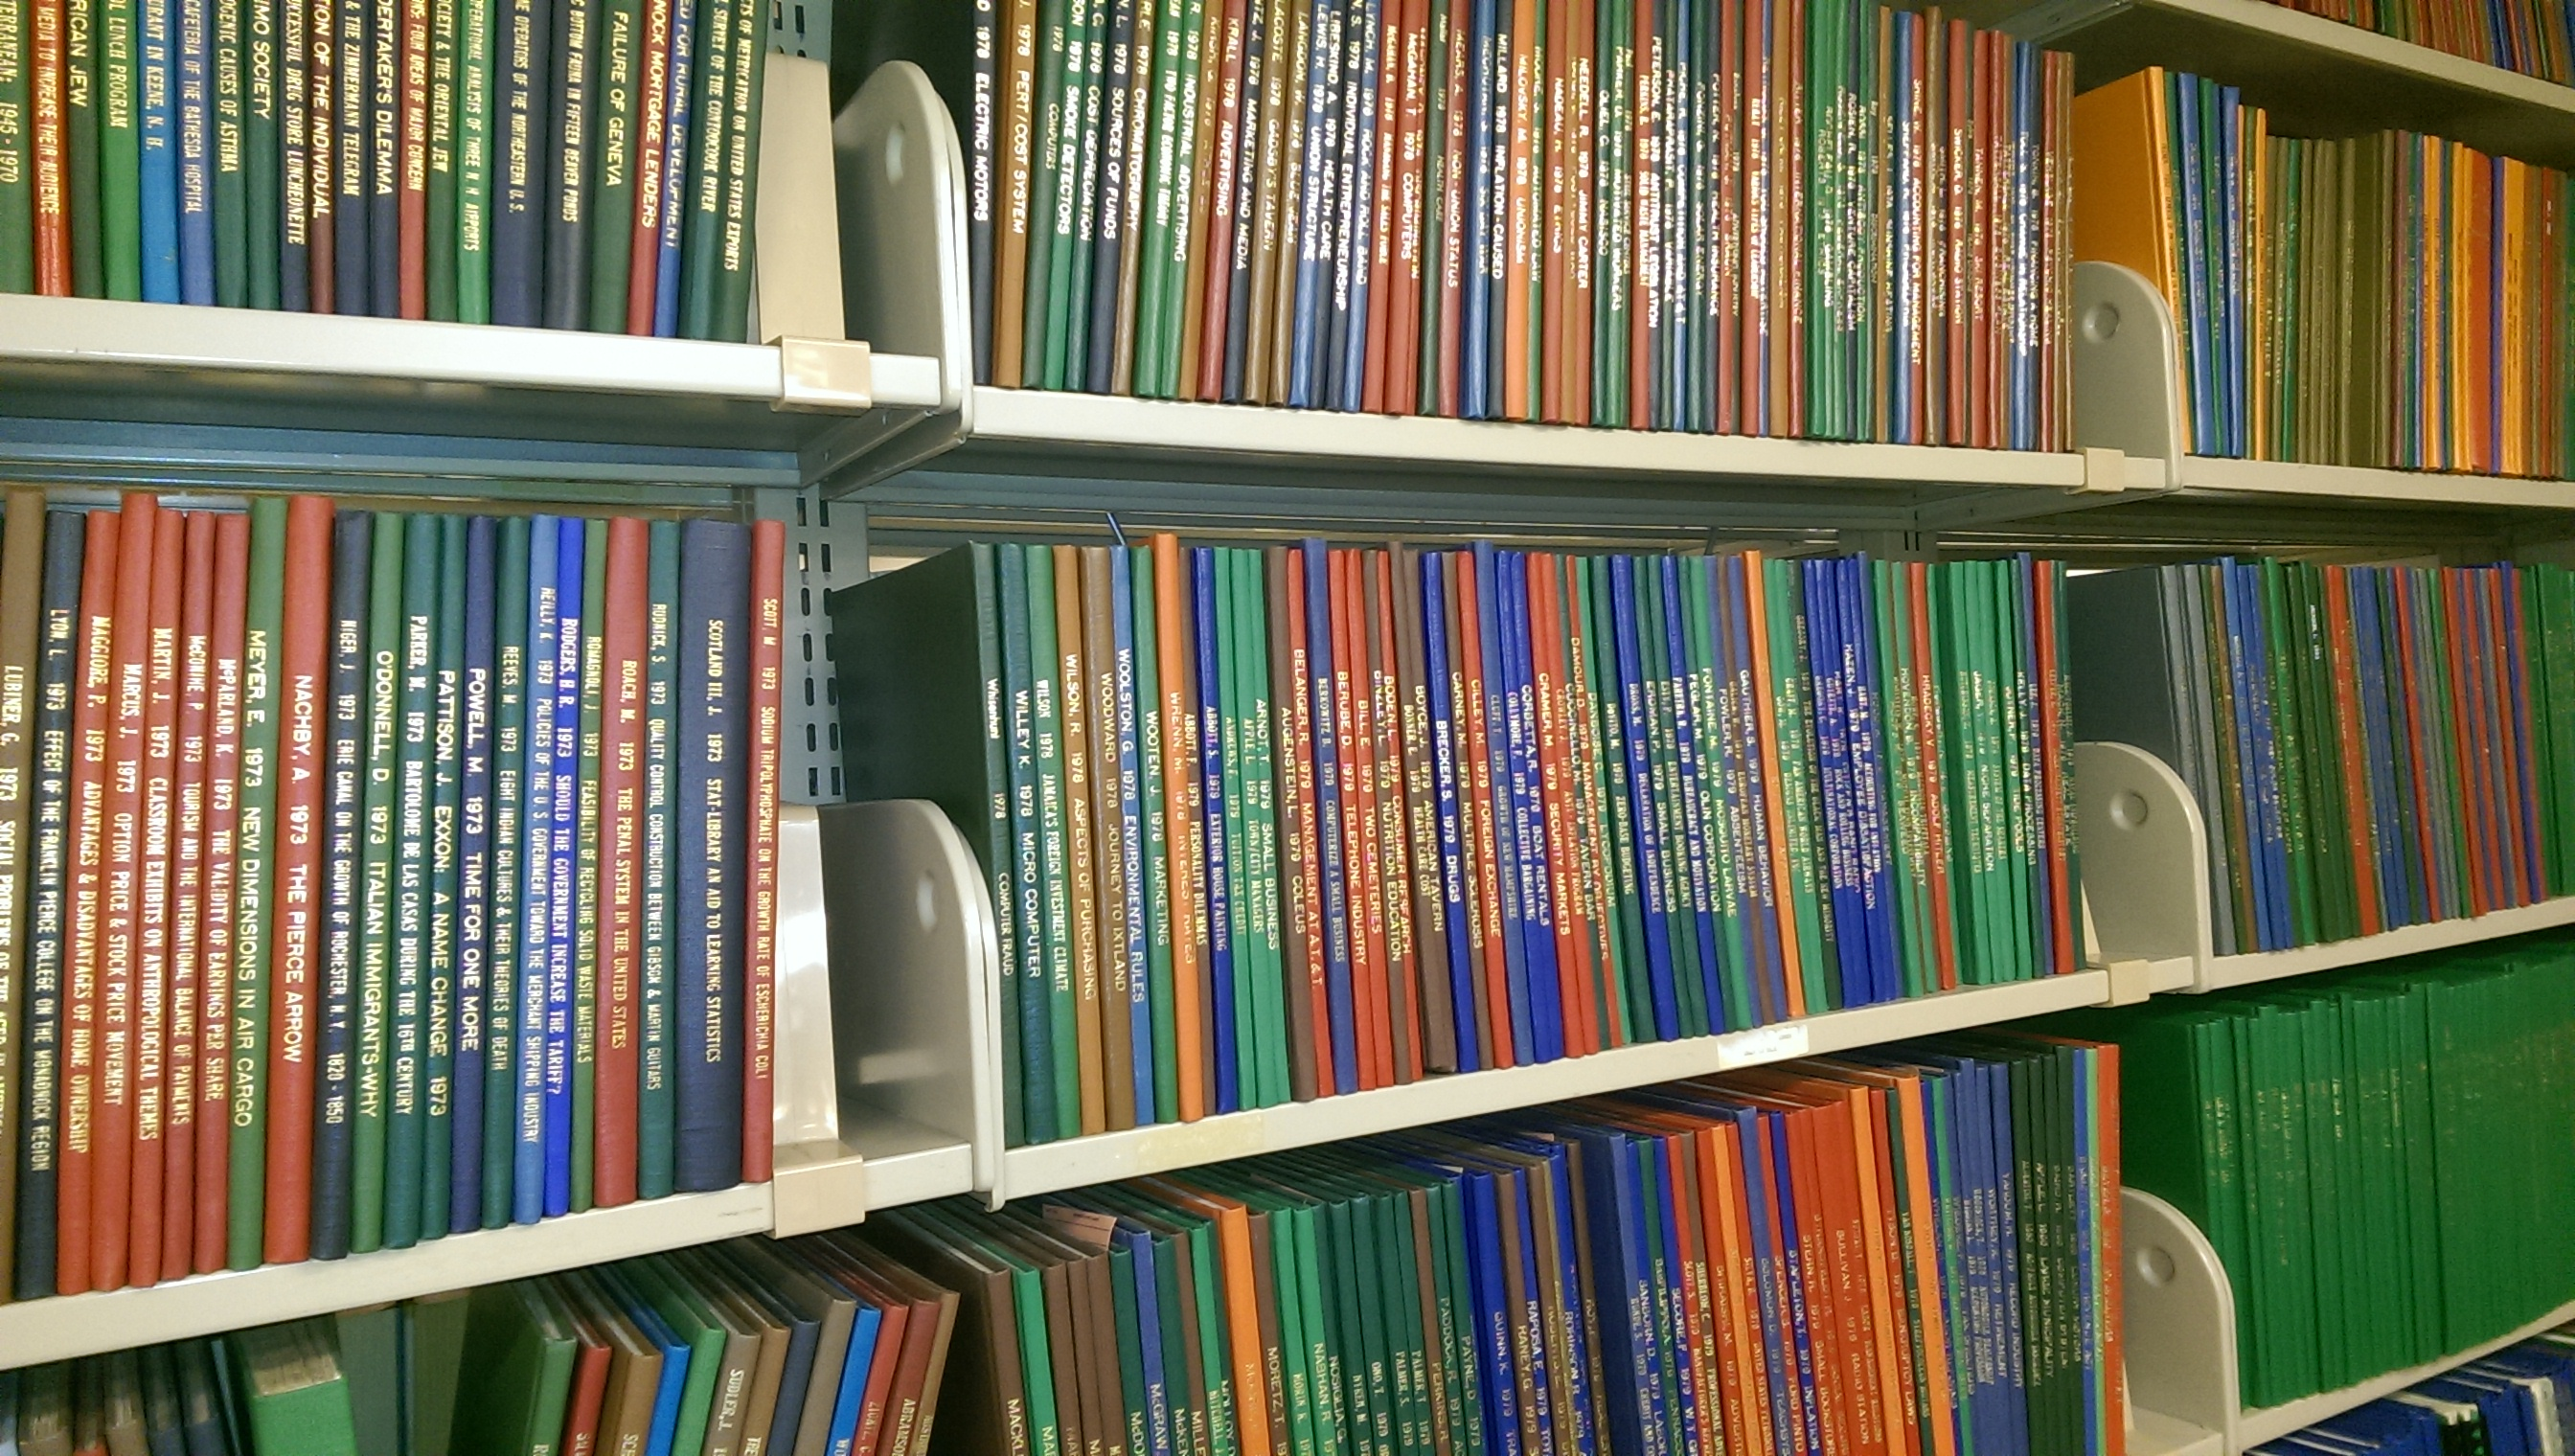 Bound dissertations of various colors line shelves.